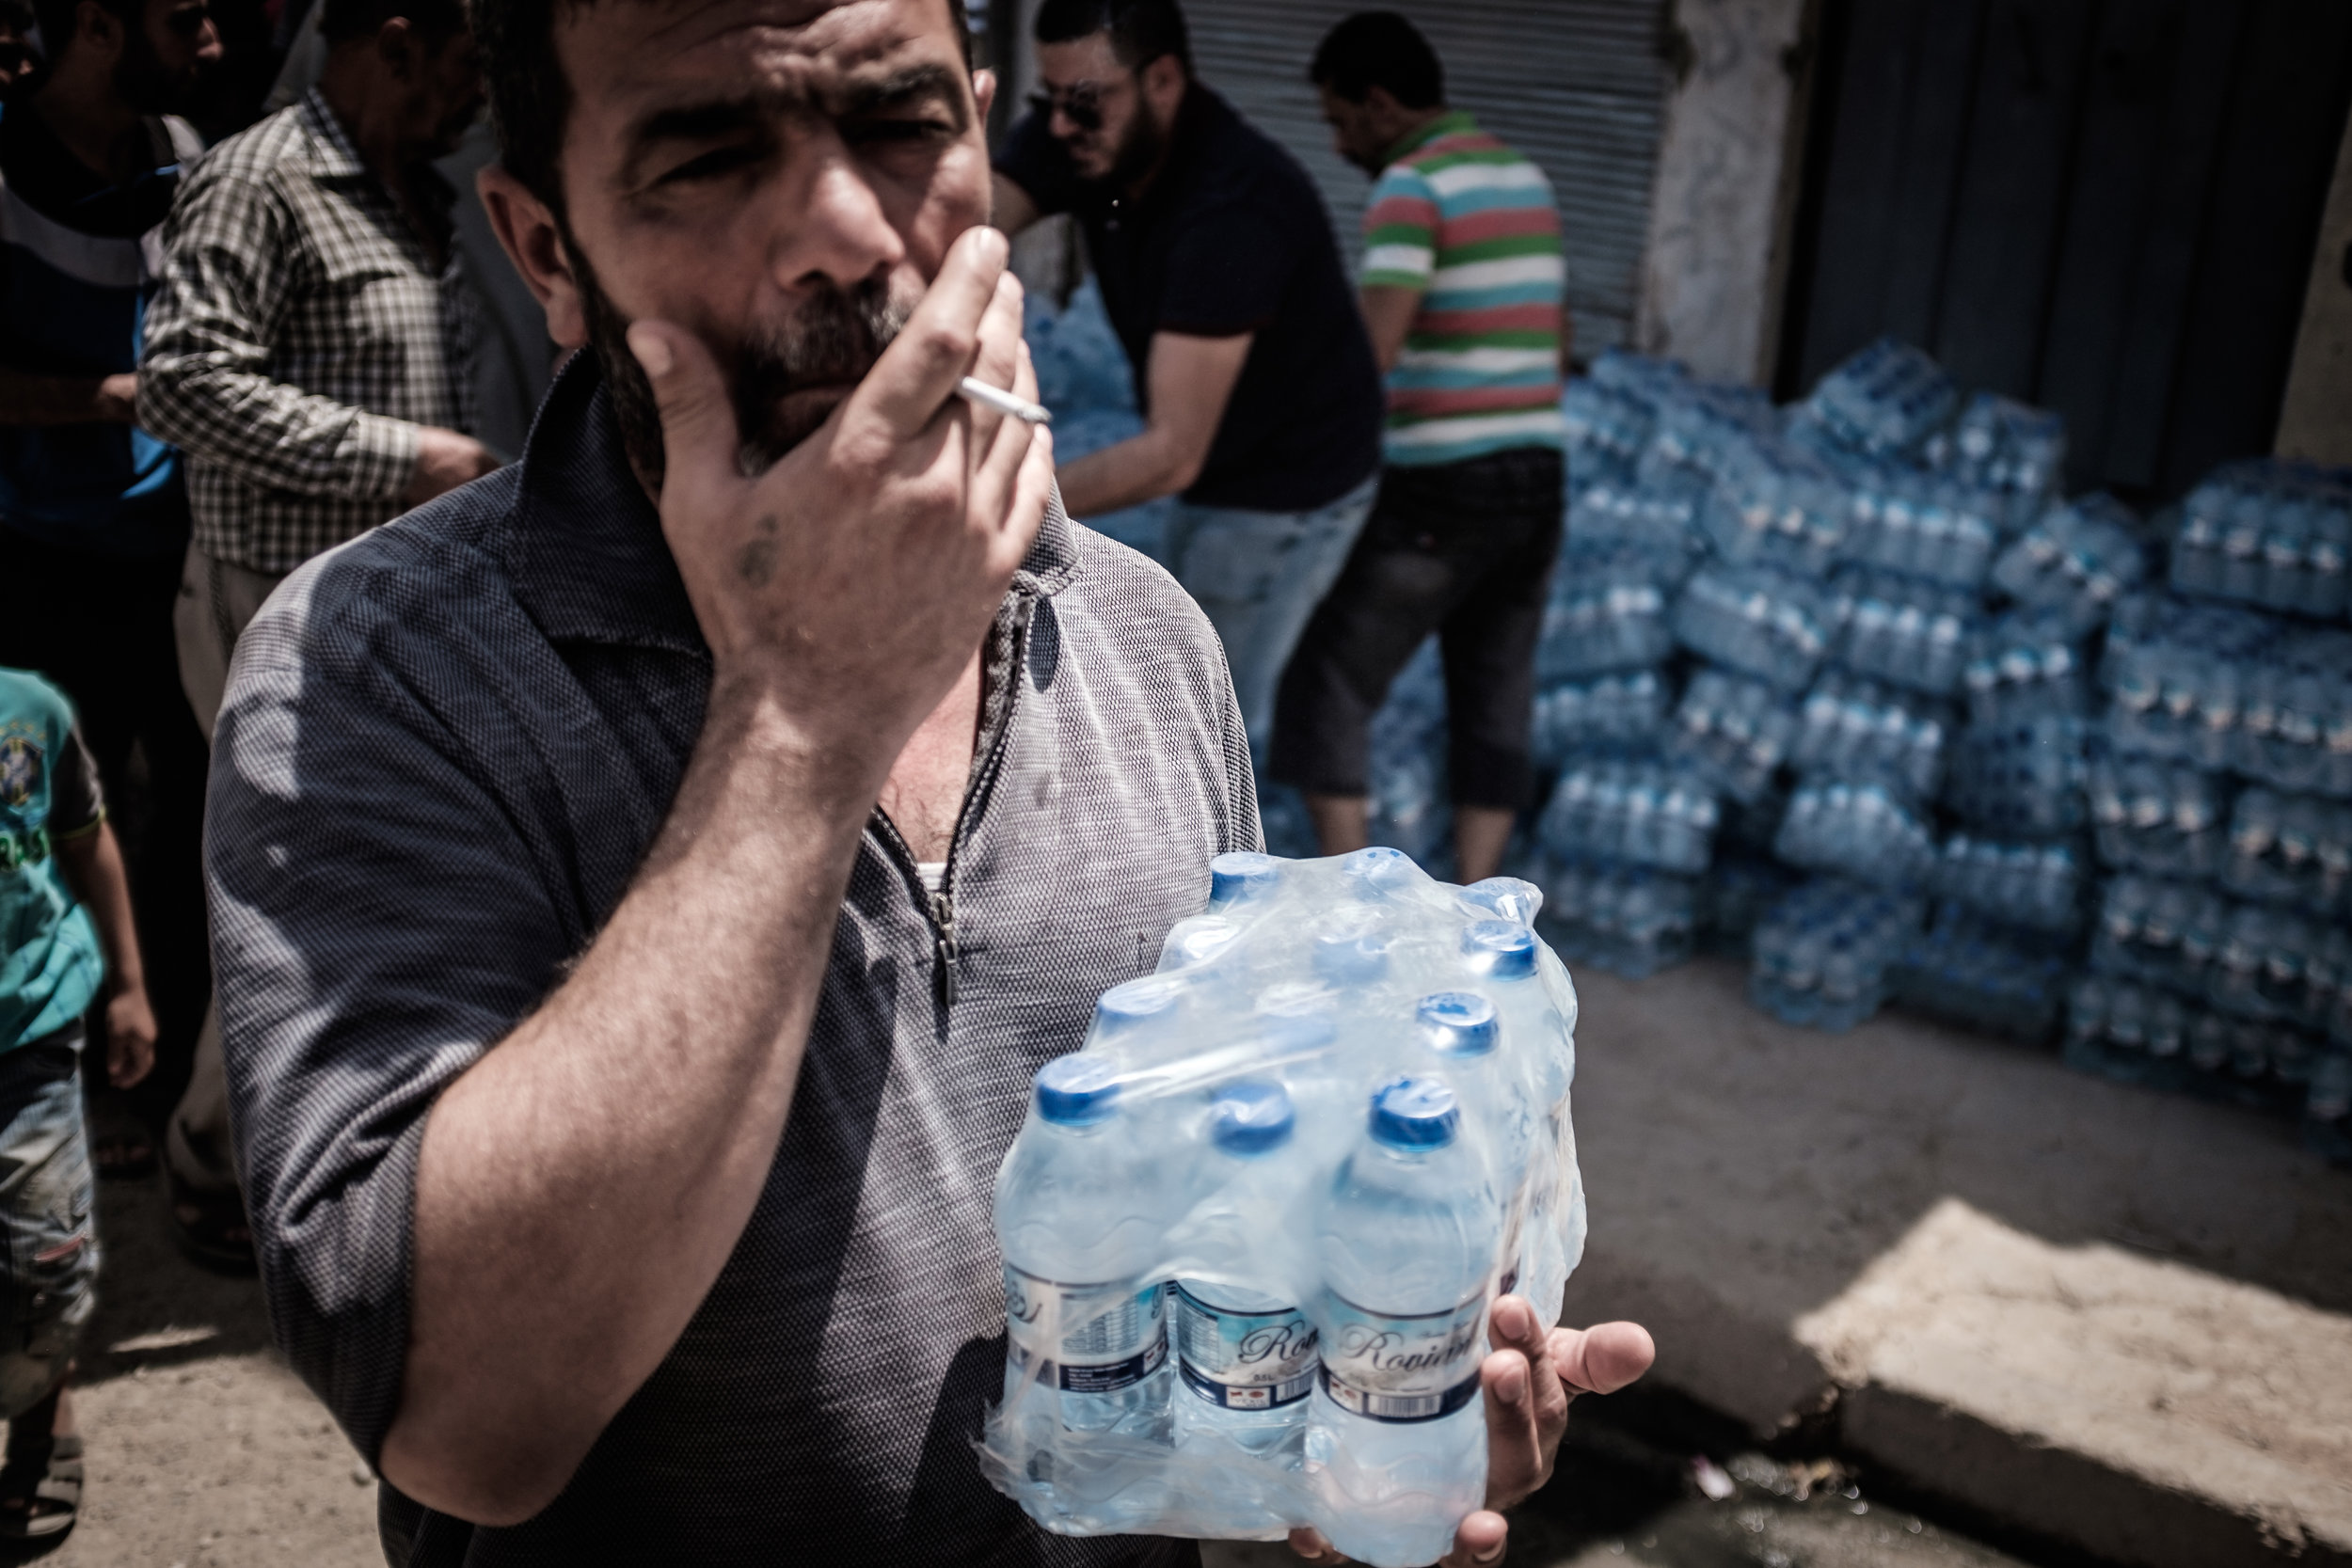 A man carries bottles of water that have been distributed by a local NGO as part of the first distribution of it's kind to this area in a number of weeks